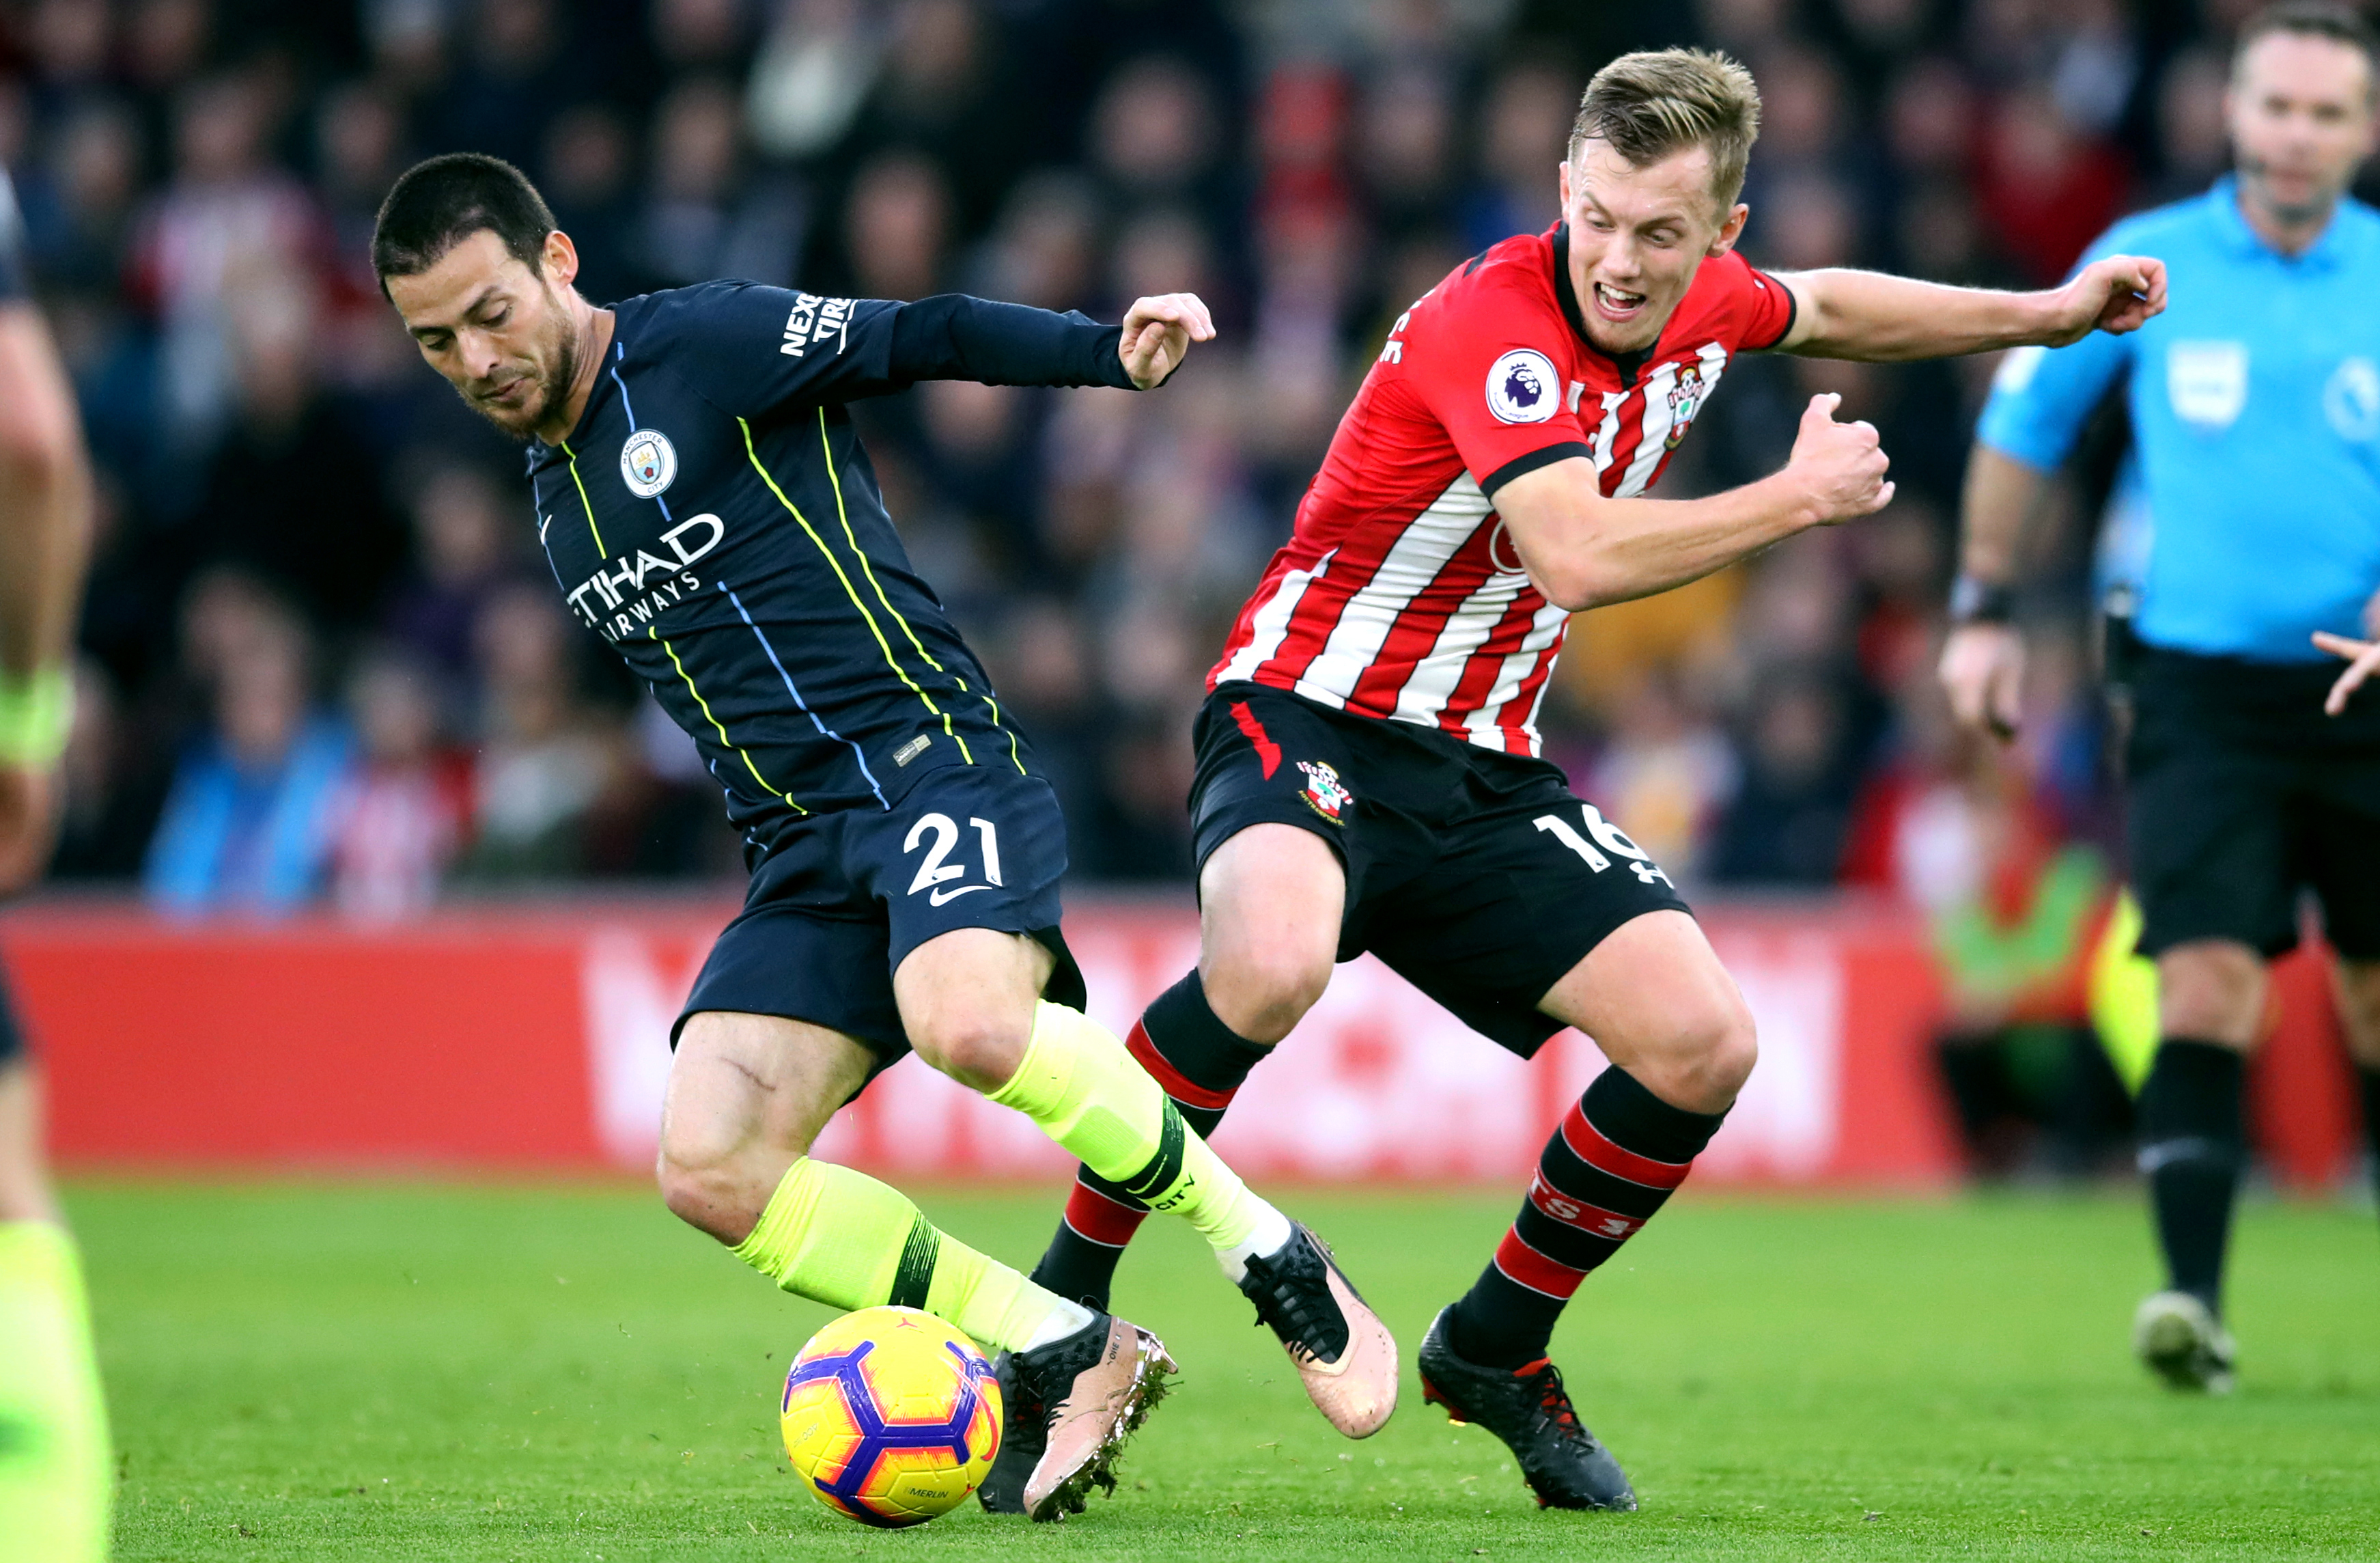 Manchester City's David Silva (left) and Southampton's James Ward-Prowse battle for the ball during the Premier League match at St Mary's Stadium, Southampton